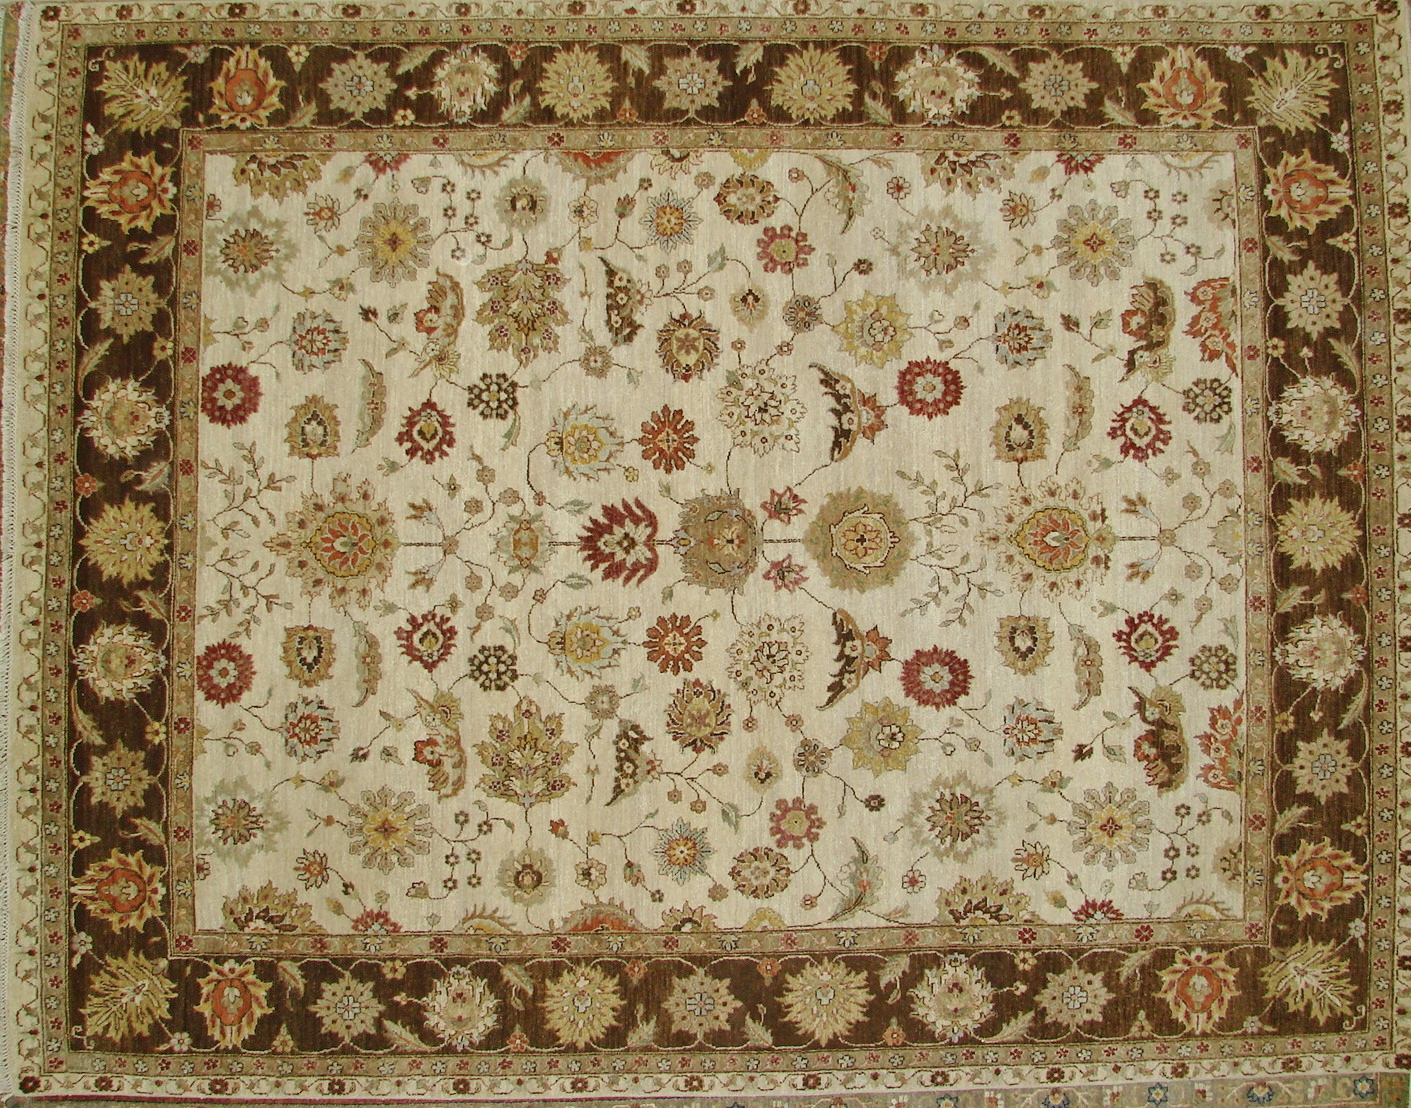 8x10 Traditional Hand Knotted Wool Area Rug - MR17502